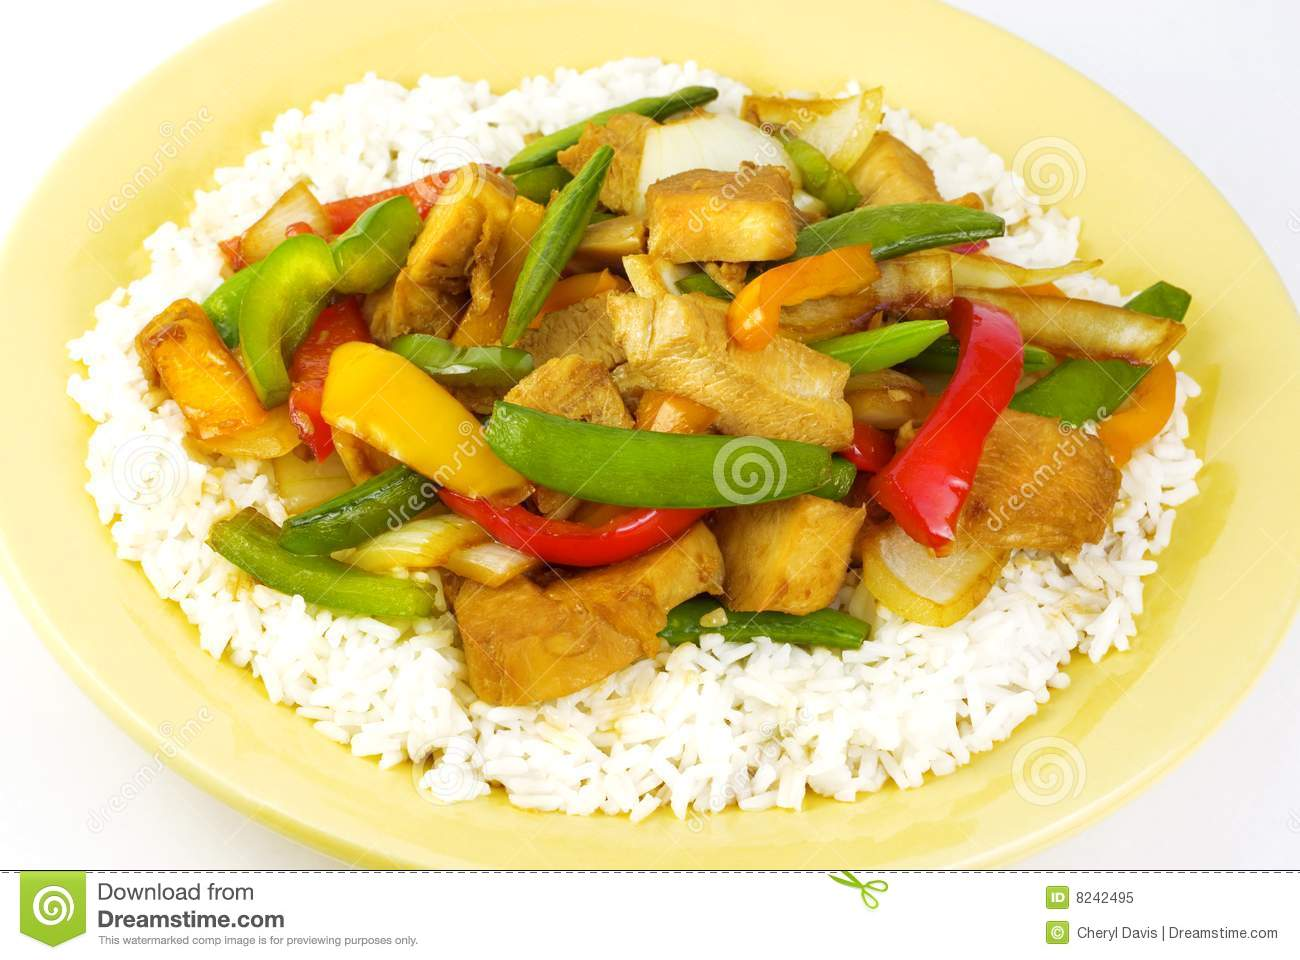 Teriyaki Chicken With Vegetables And Rice Royalty Free Stock Photo.